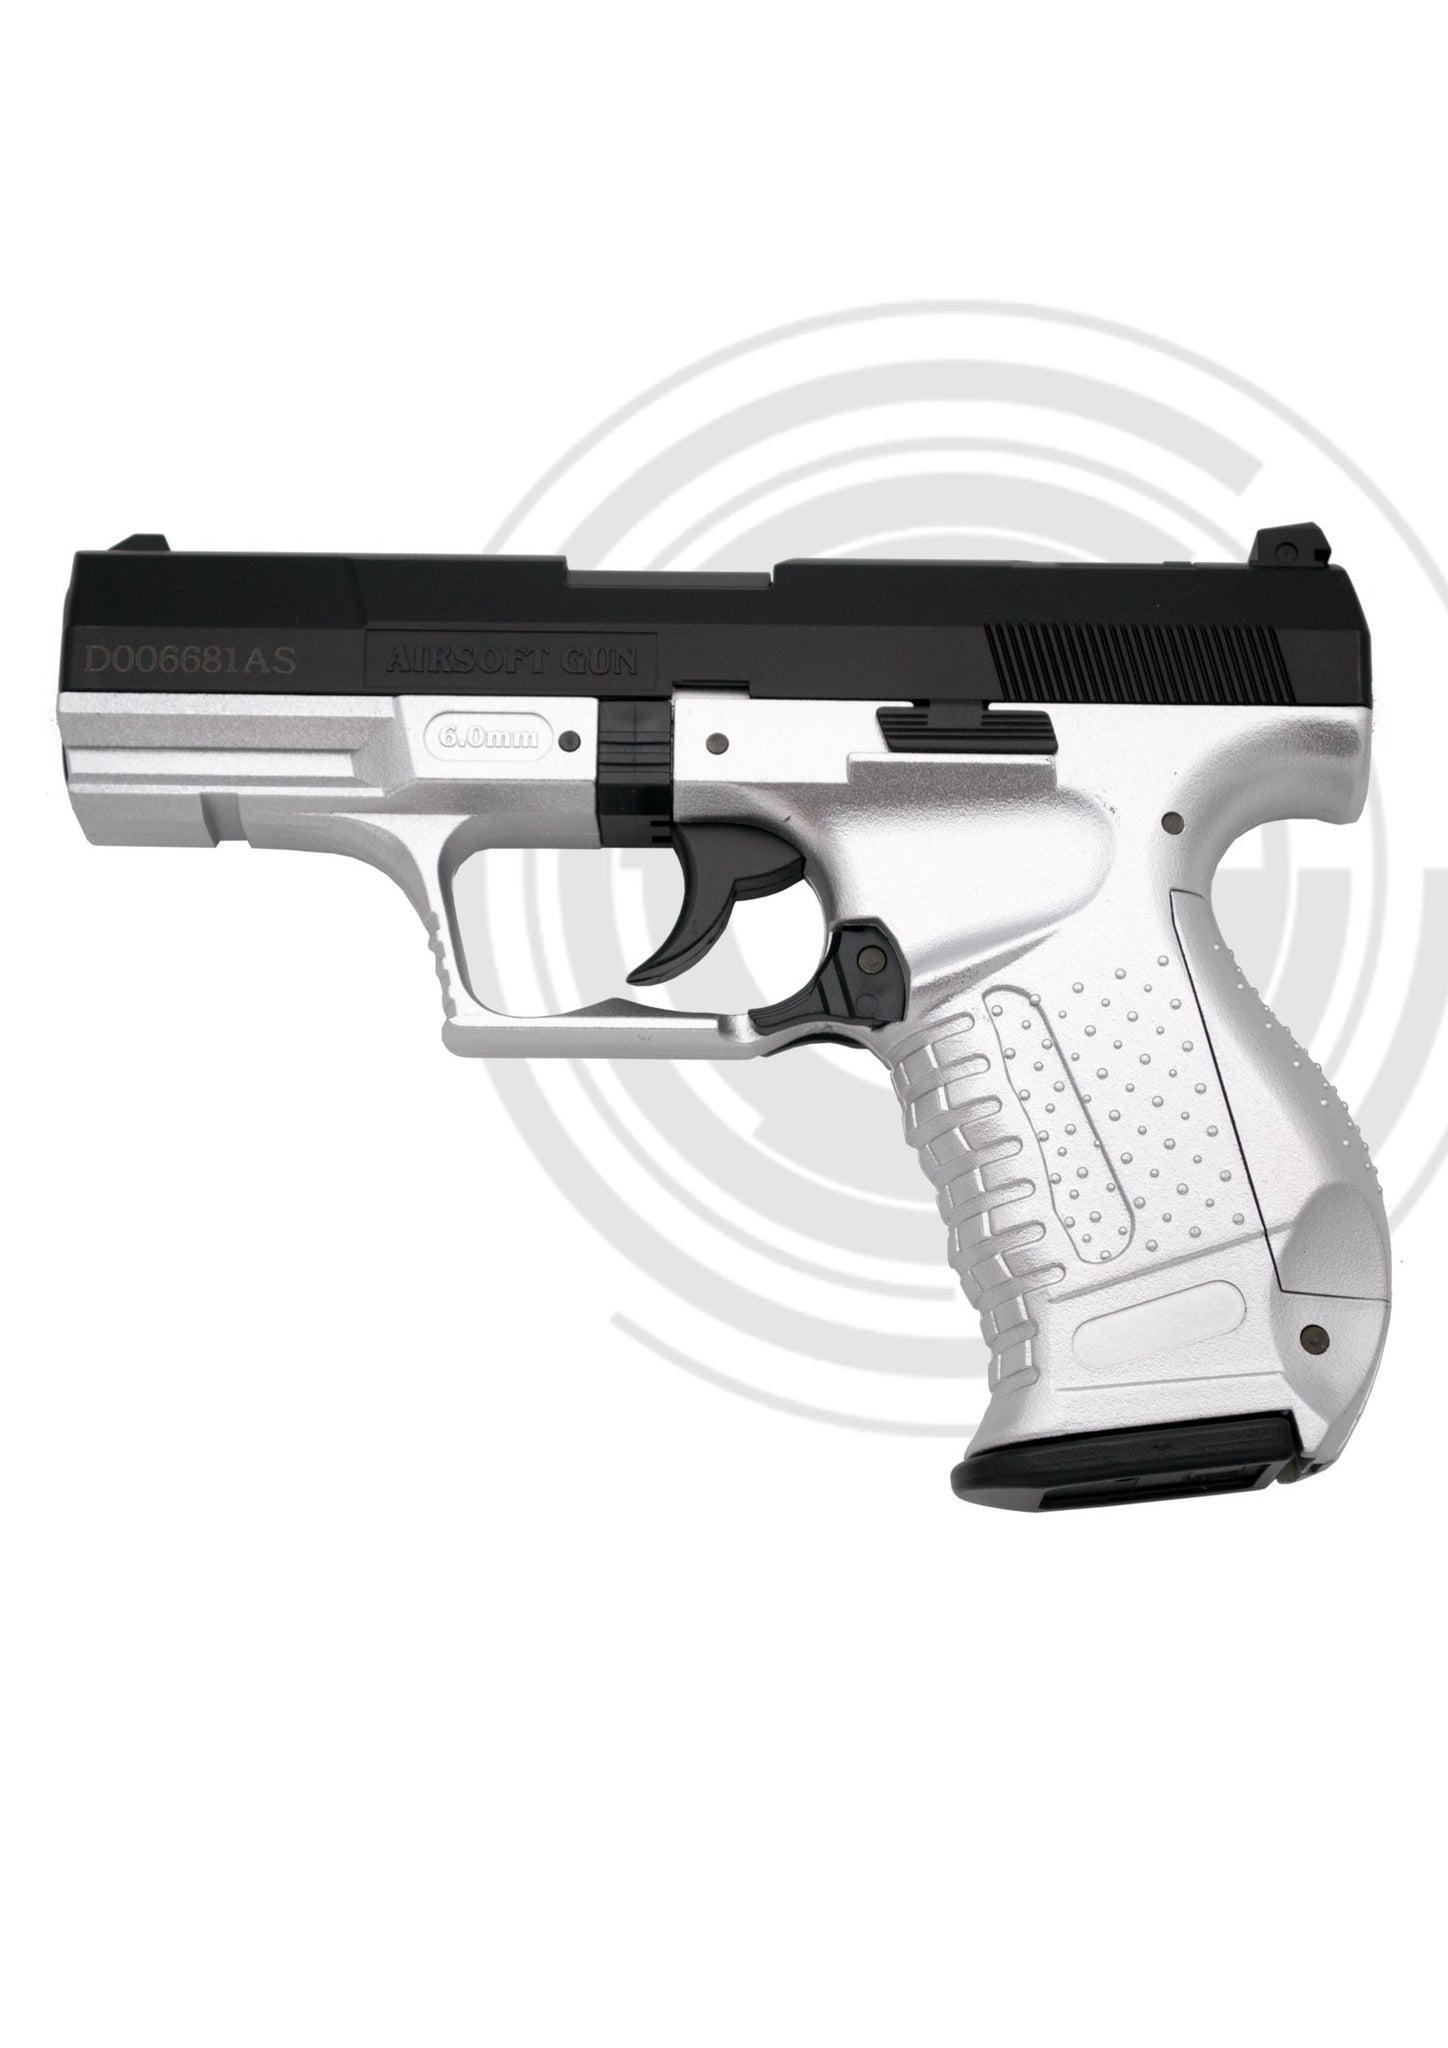 Pistola Airsoft Muelle (Bolas PVC 6mm) 120 BC